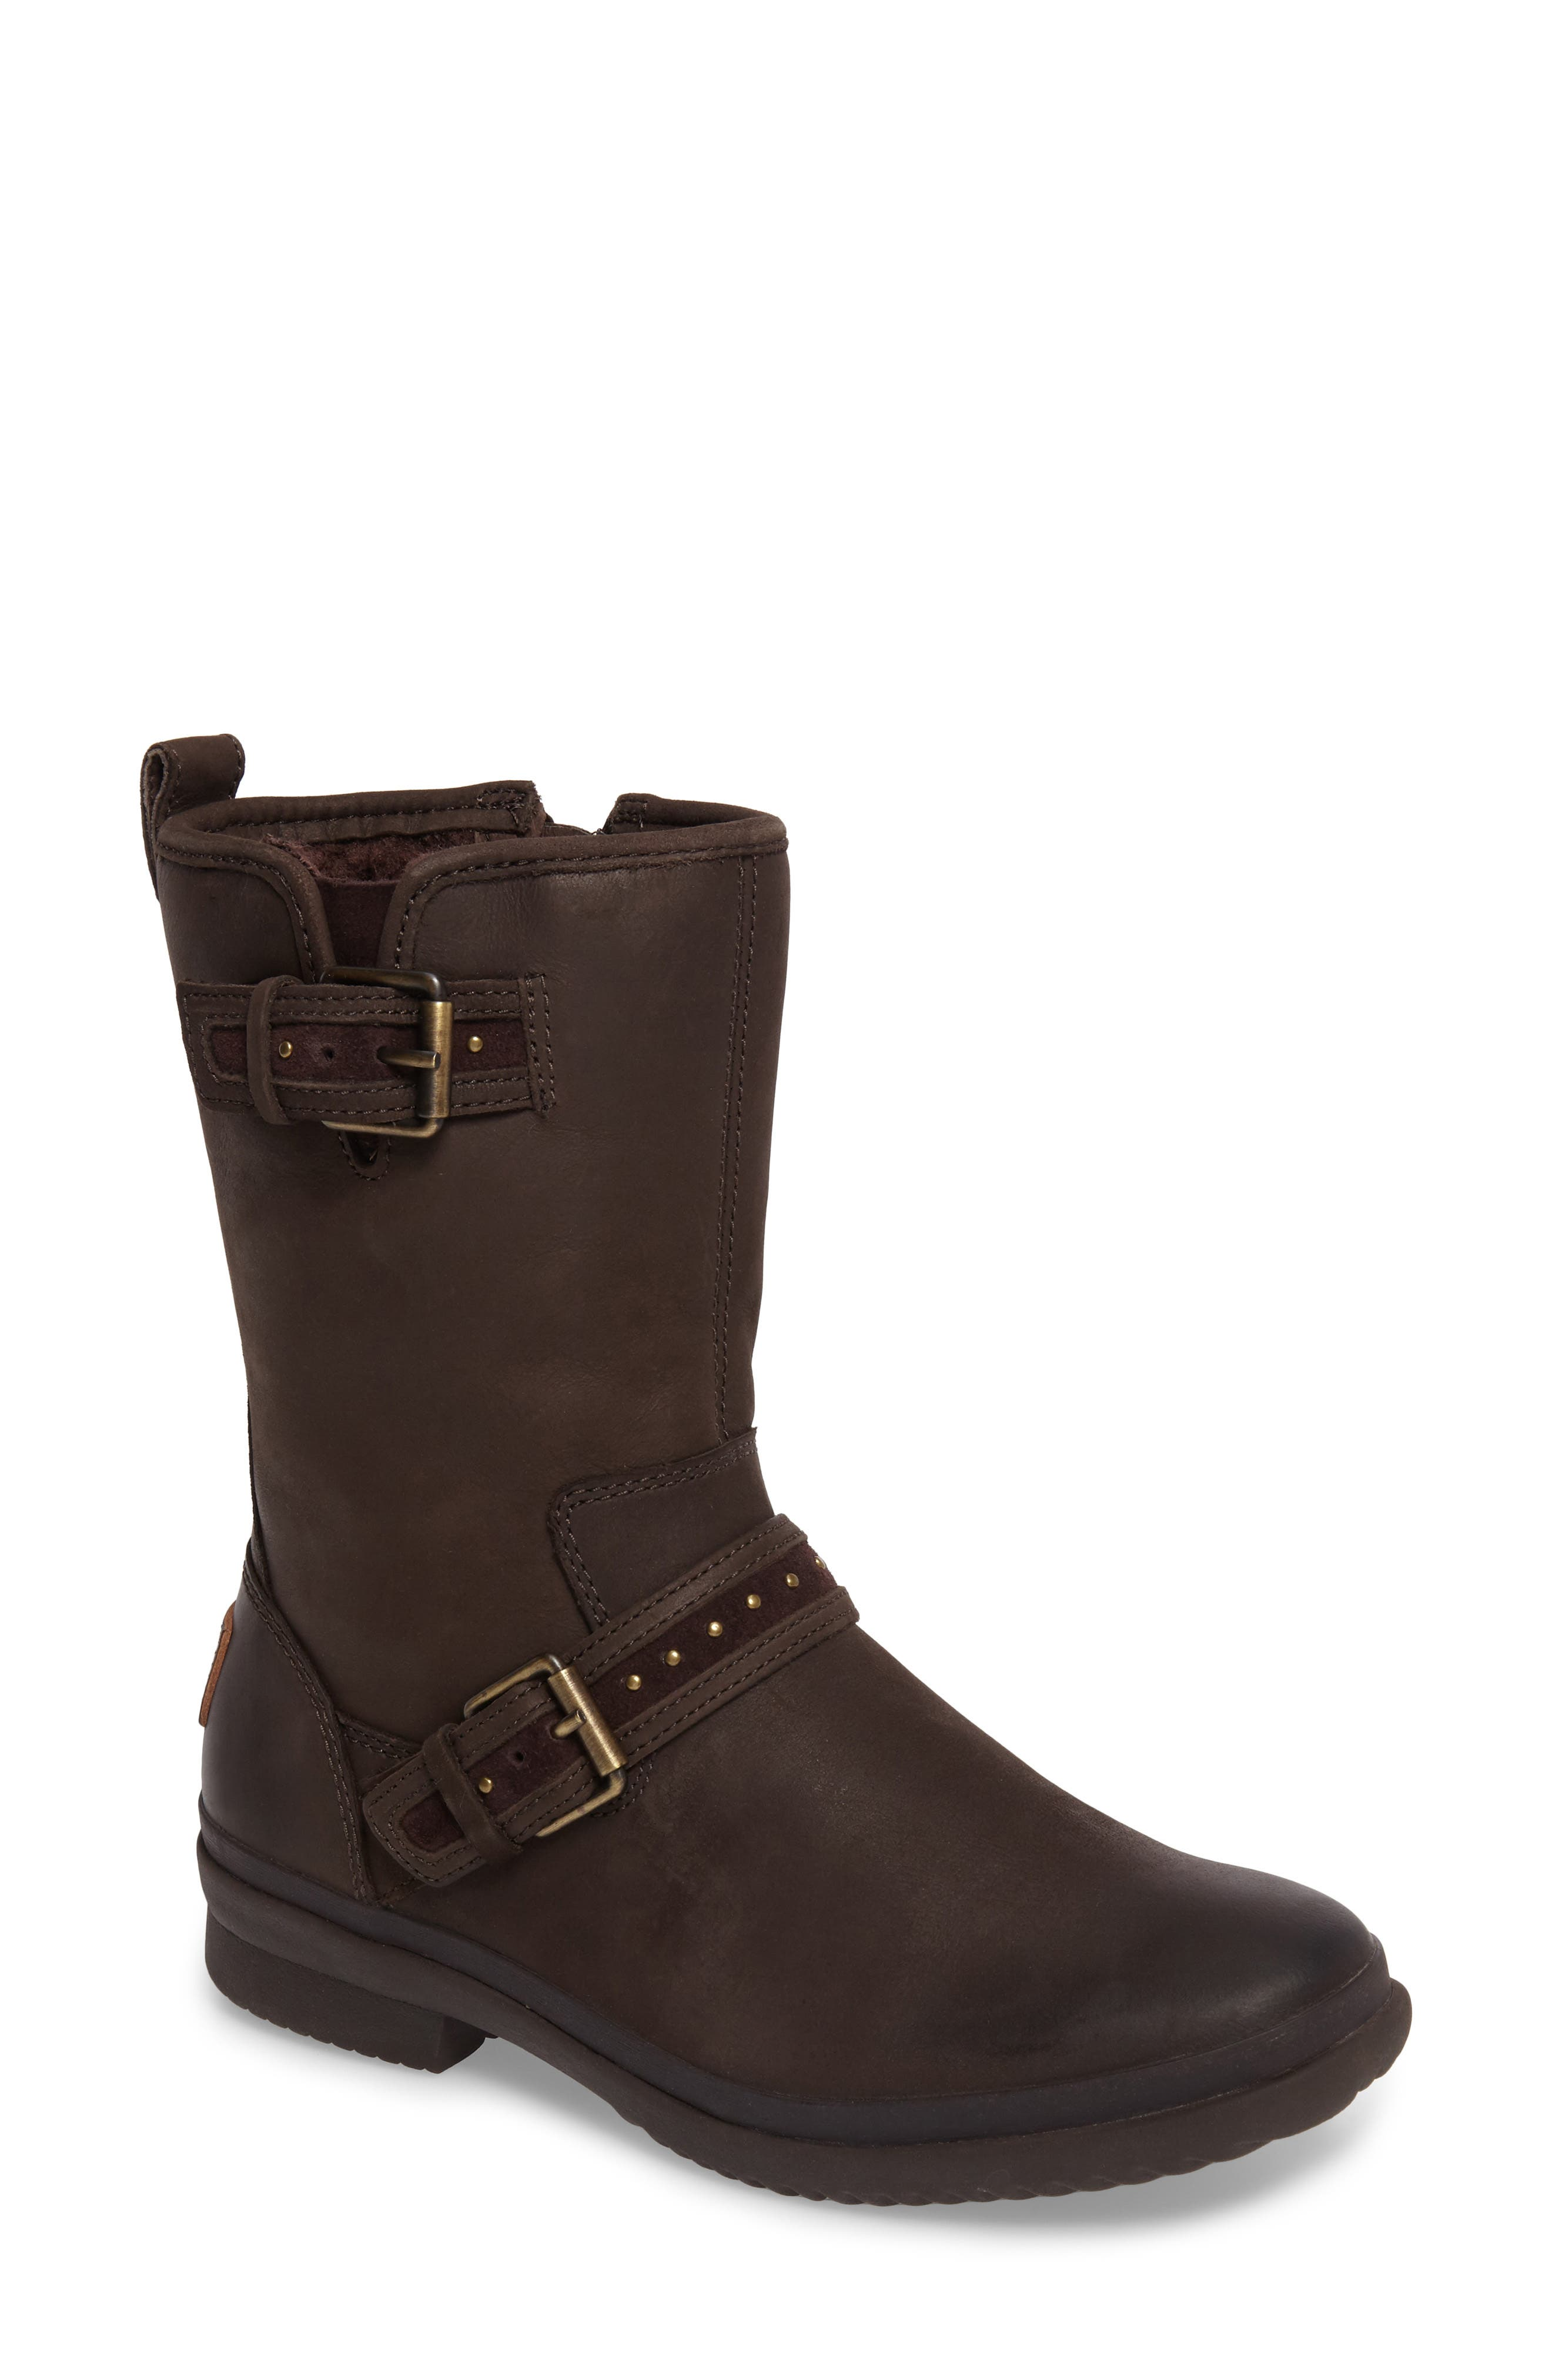 Jenise Waterproof Boot,                             Main thumbnail 1, color,                             Stout Leather